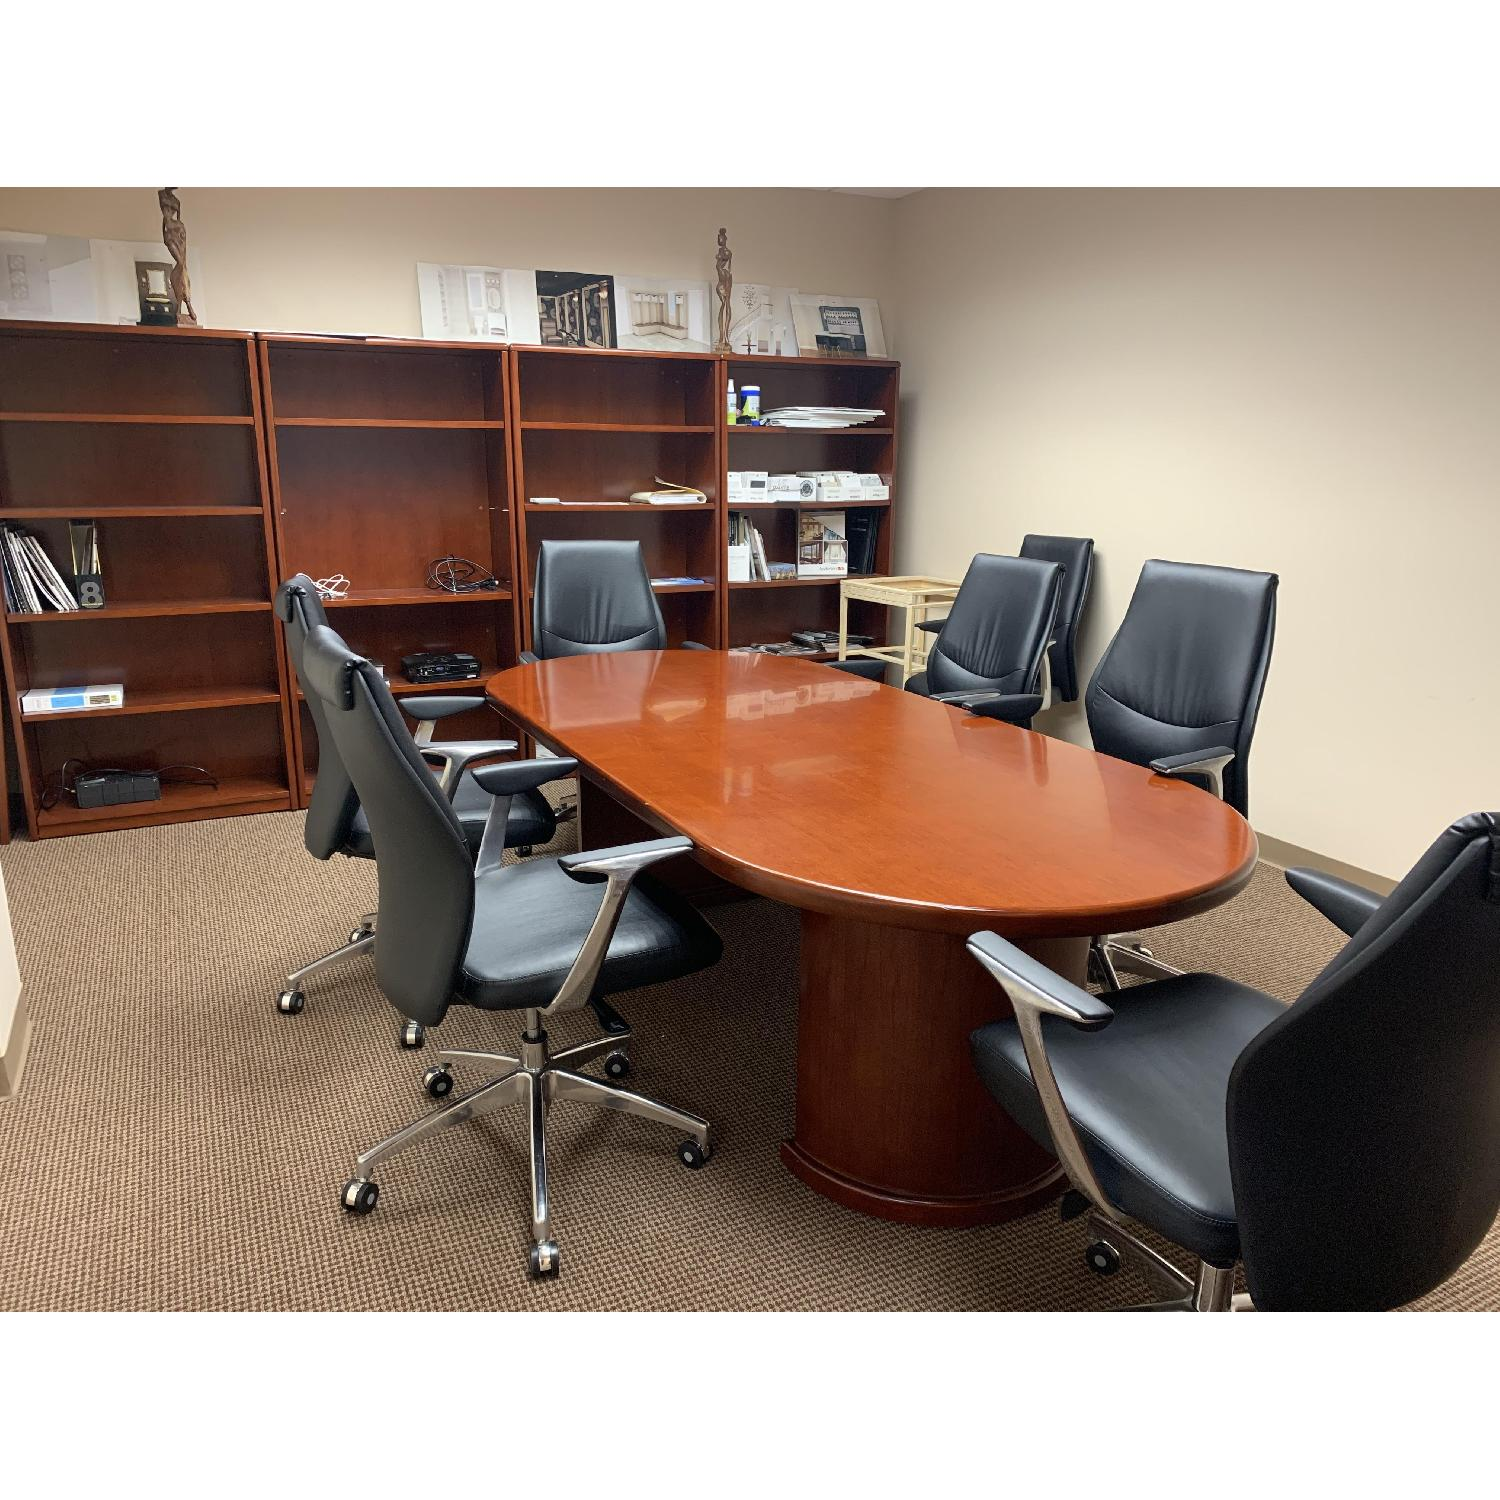 Conference Table w/ 6 Chairs - image-1